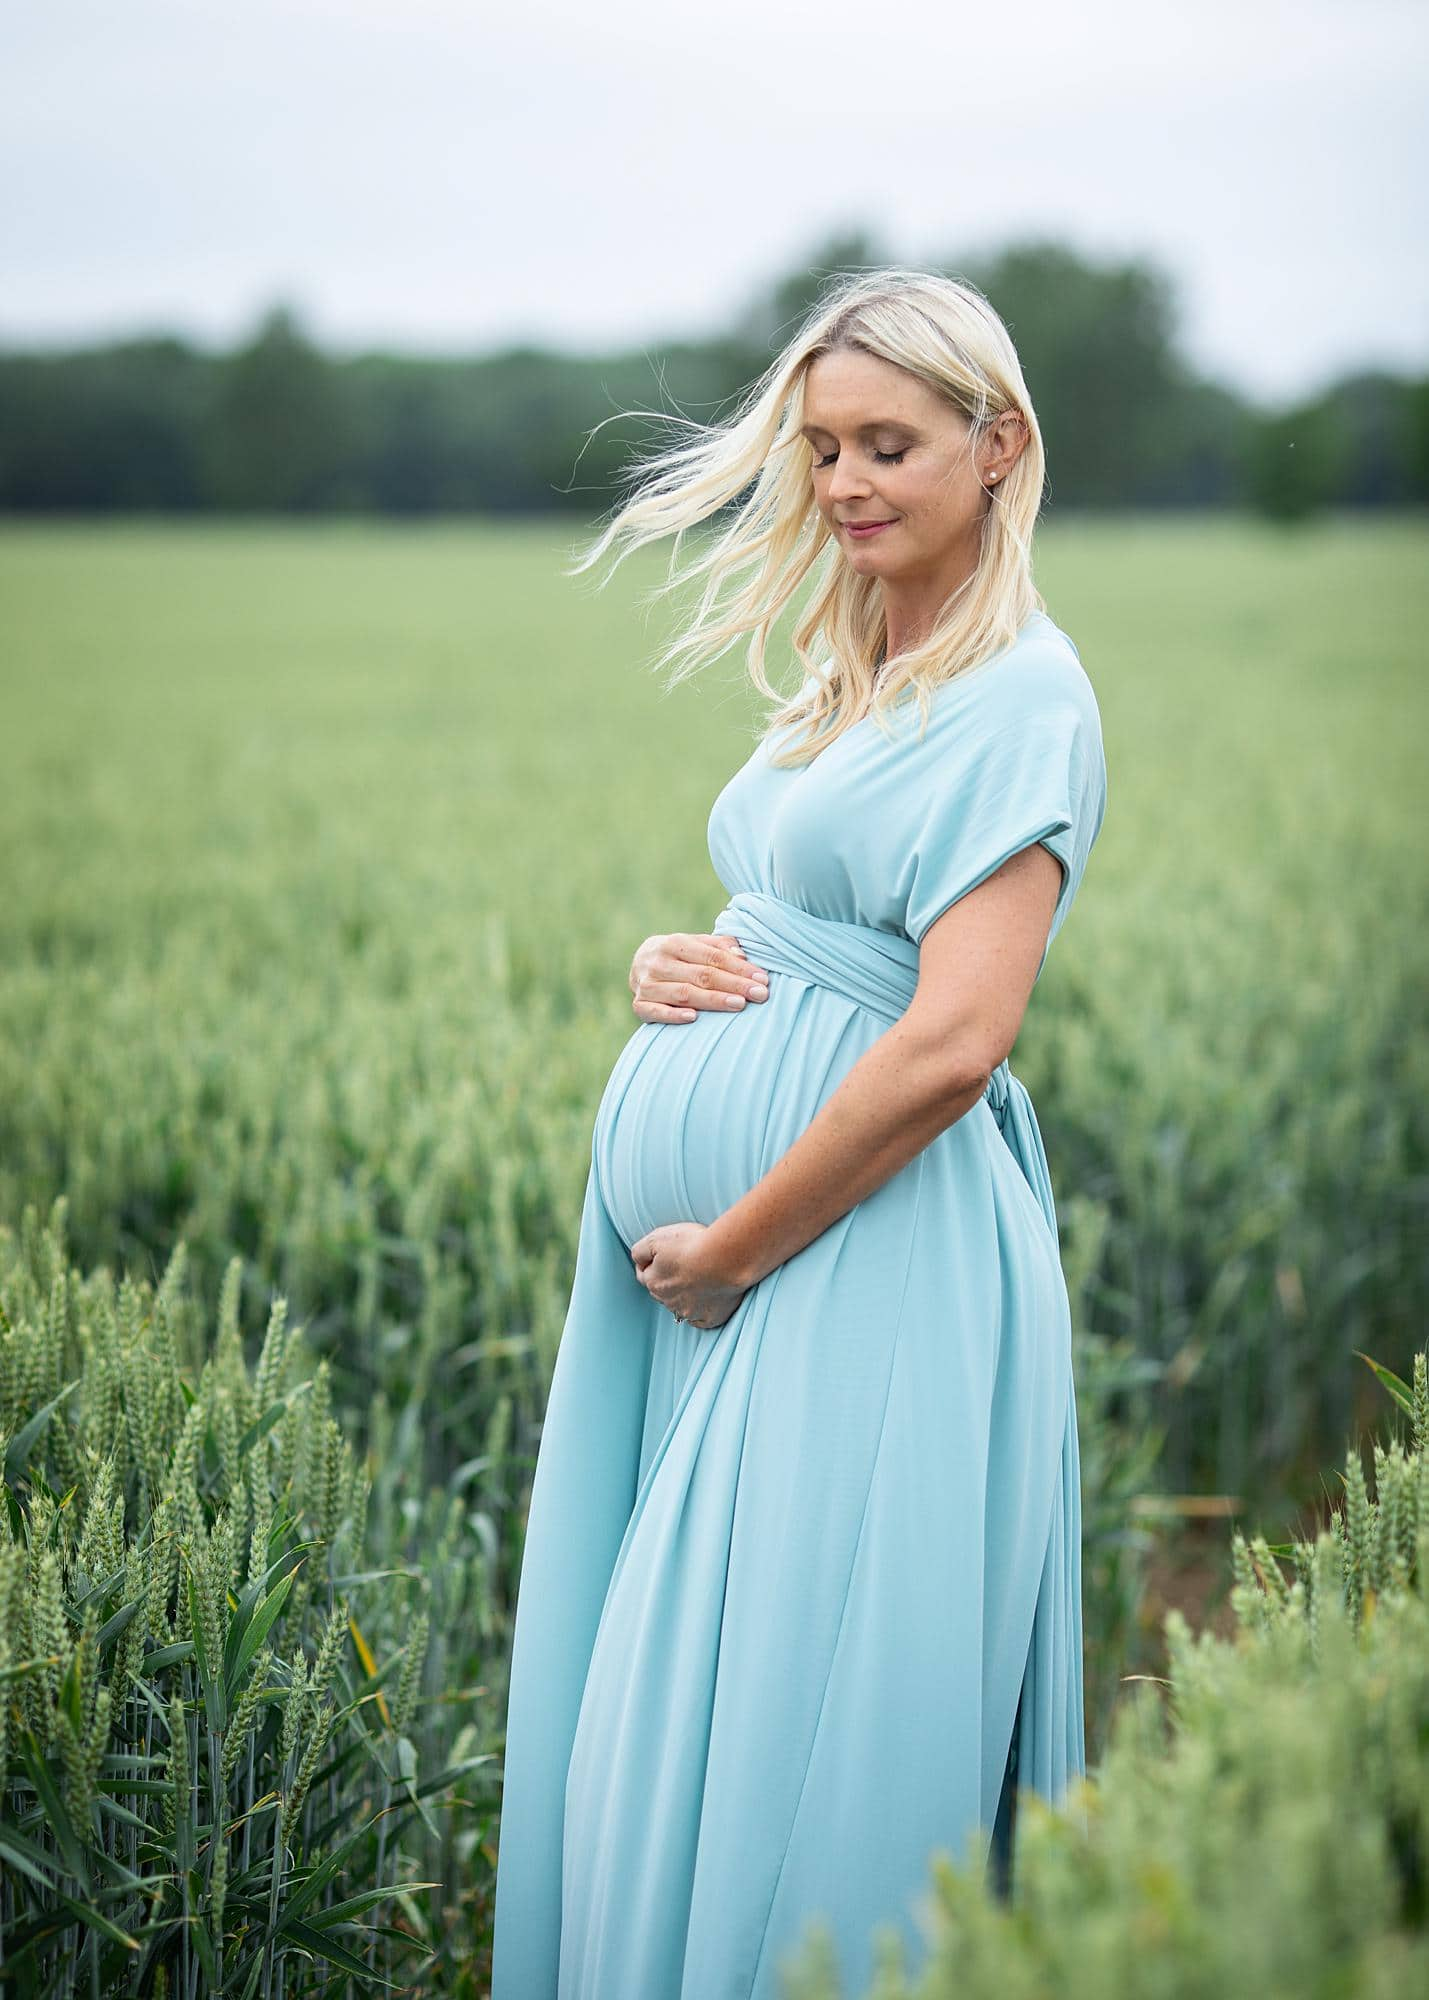 Pregnant woman posing in a blue dress for a maternity photoshoot in a field in Suffolk